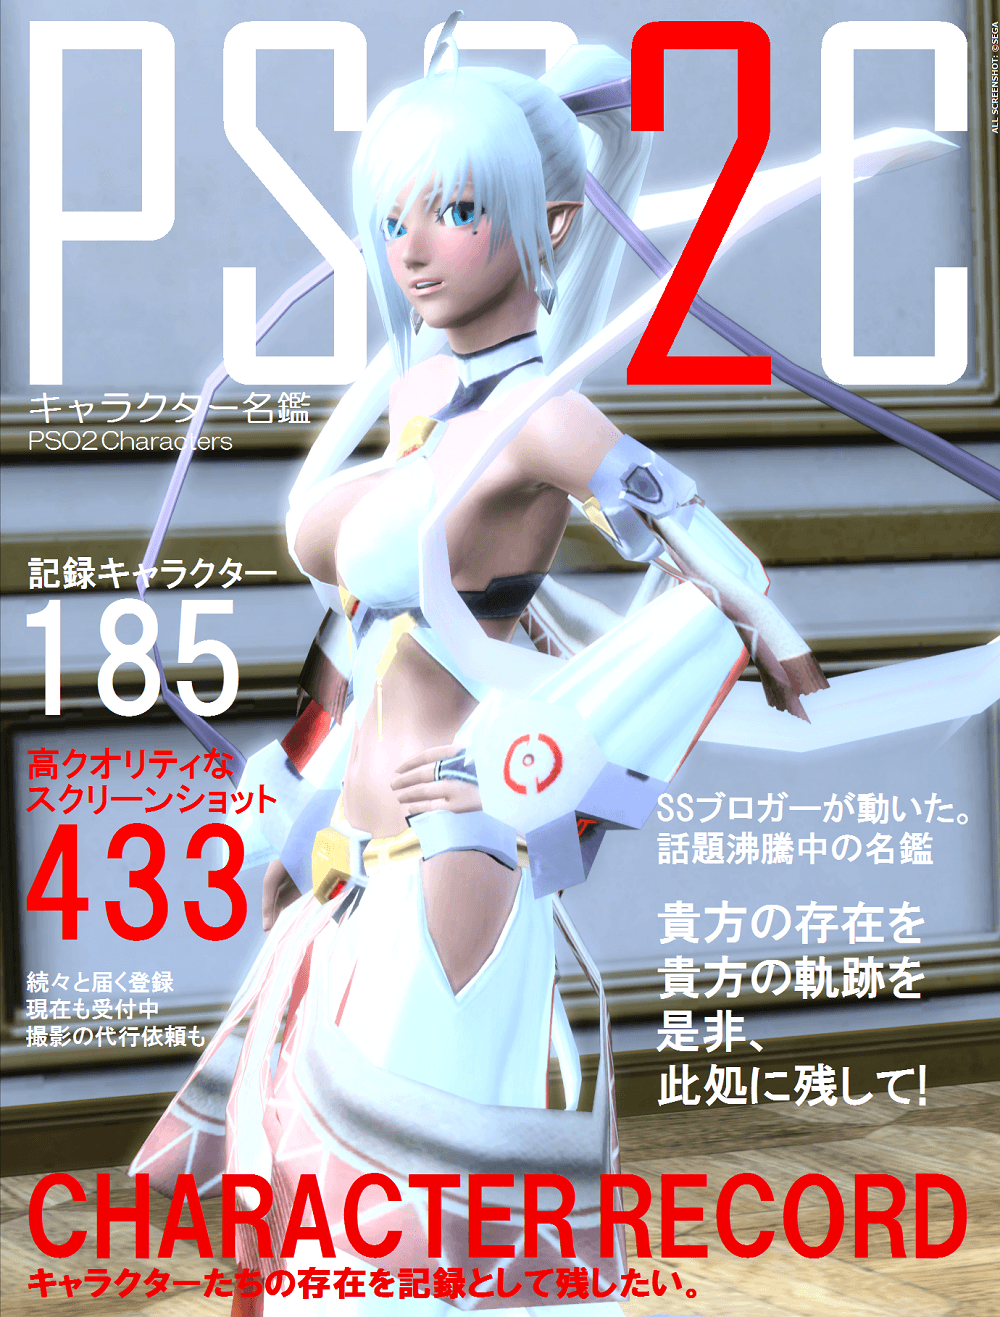 pso2cscover05.png